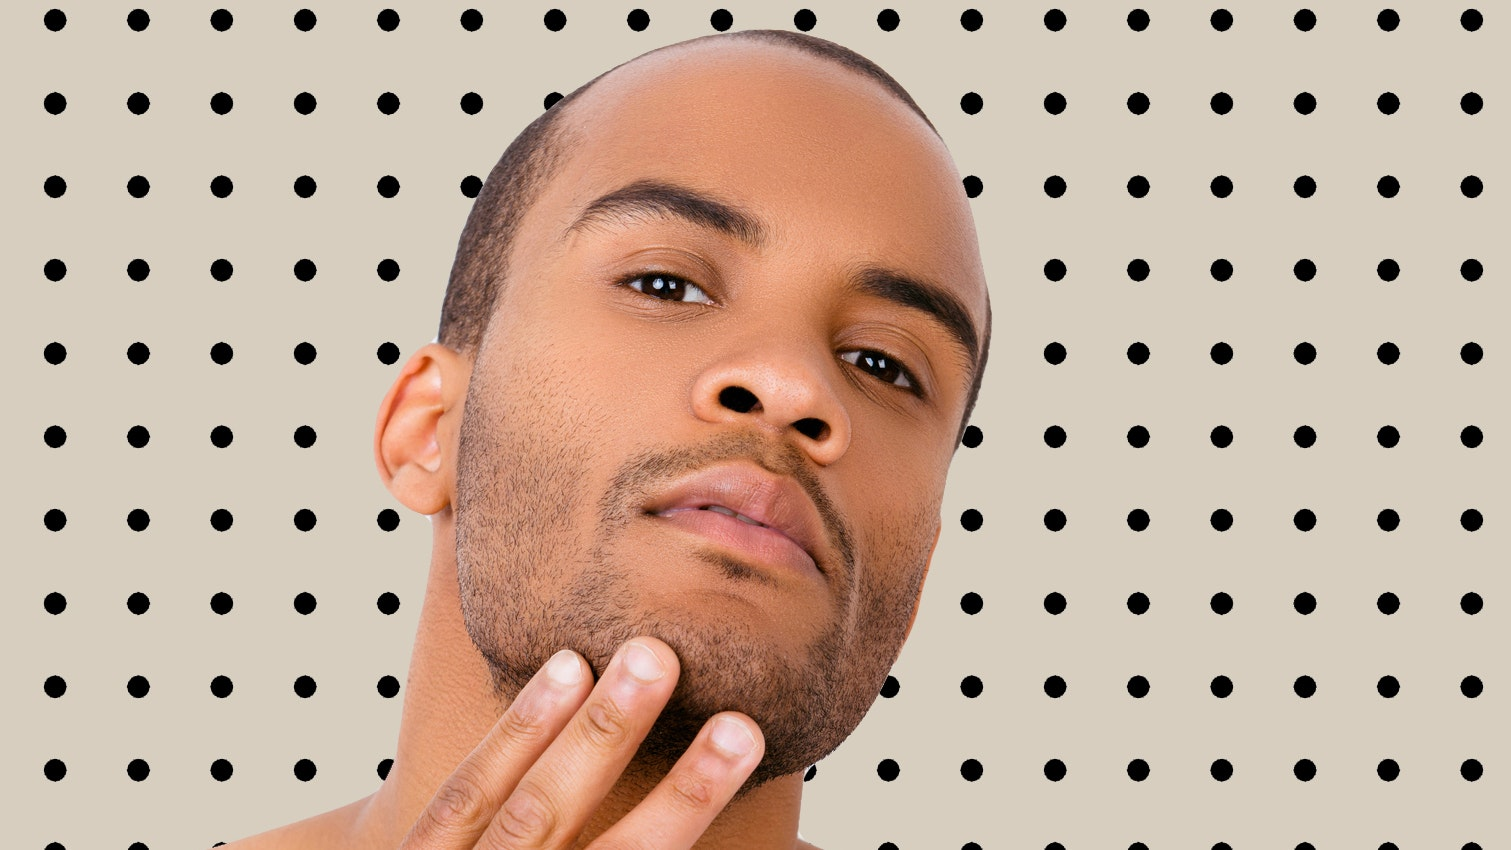 How This Medical Aesthetics Treatment Could Be the Solution to Men's Shaving Issues